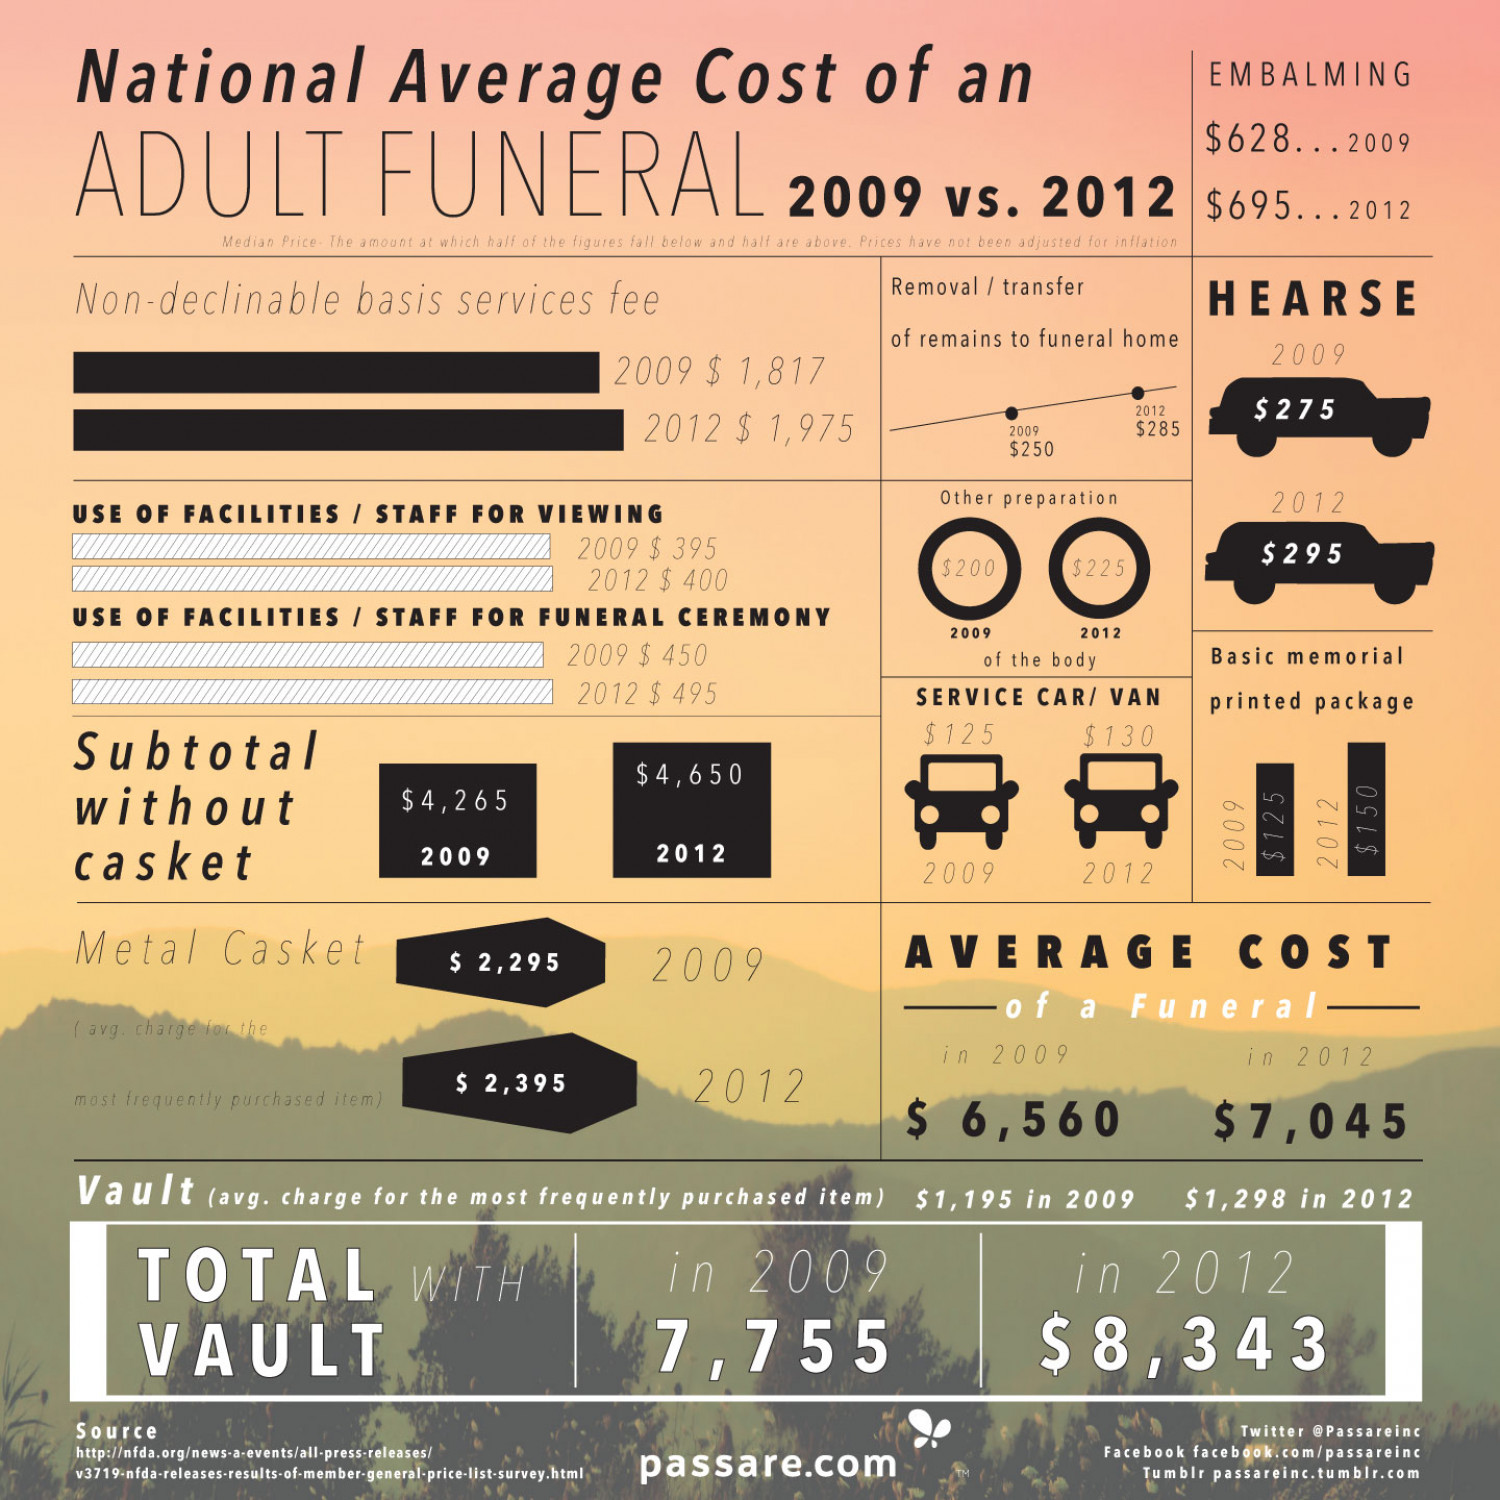 National Average Cost of an Adult Funeral 2009 vs. 2012 Infographic